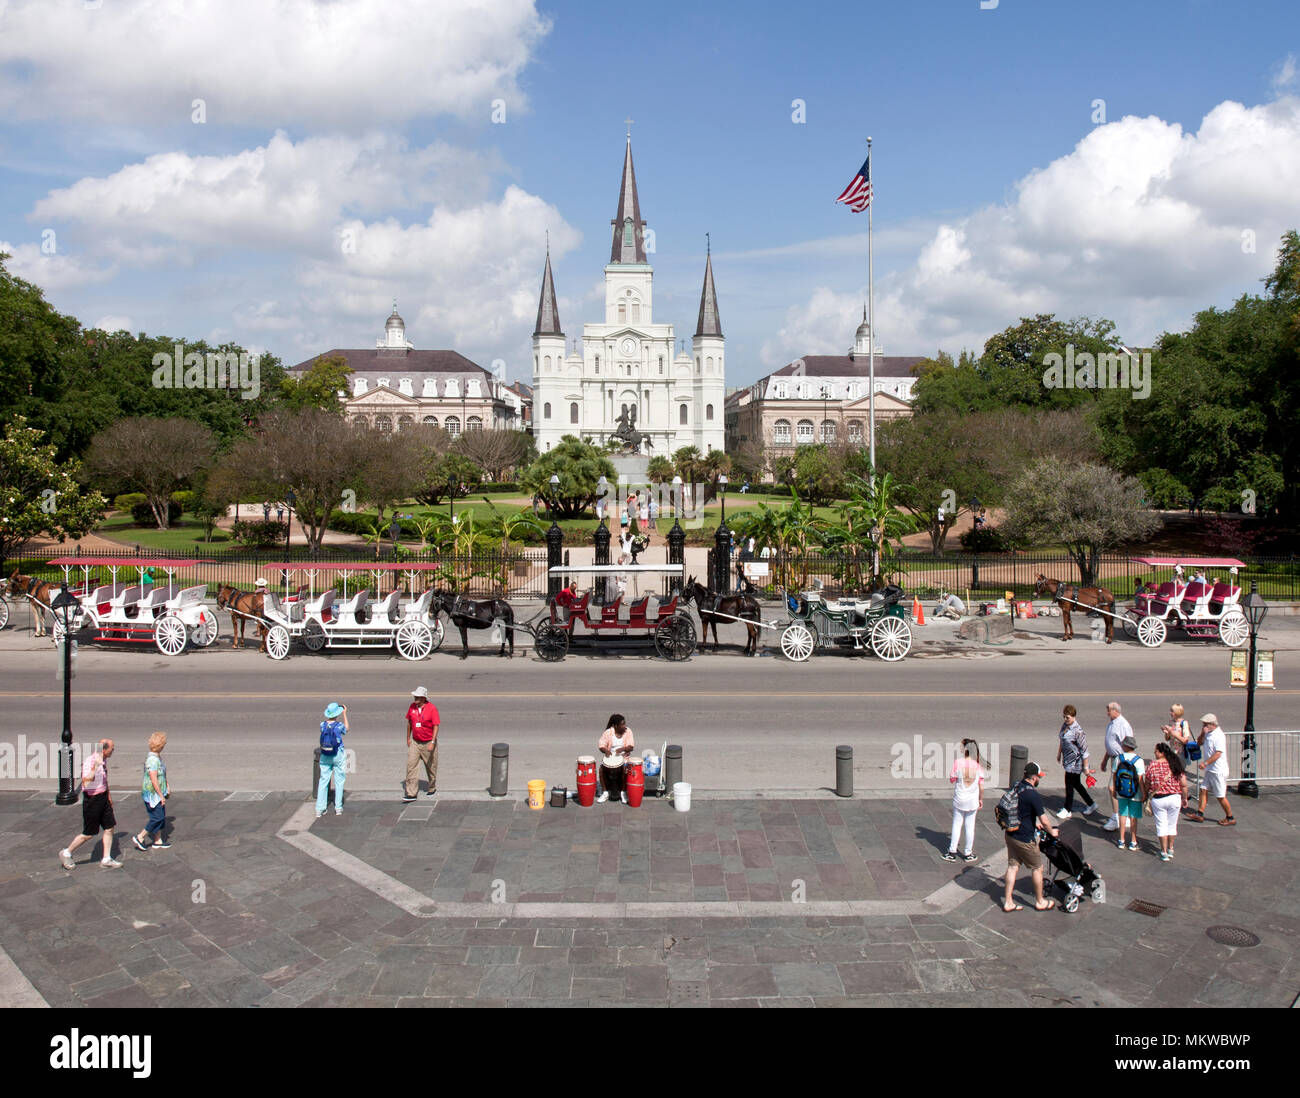 Decatur Street at Jackson Square, New Orleans, Louisiana. The bongo drummer in the lower center makes up rap about the people walking by. - Stock Image